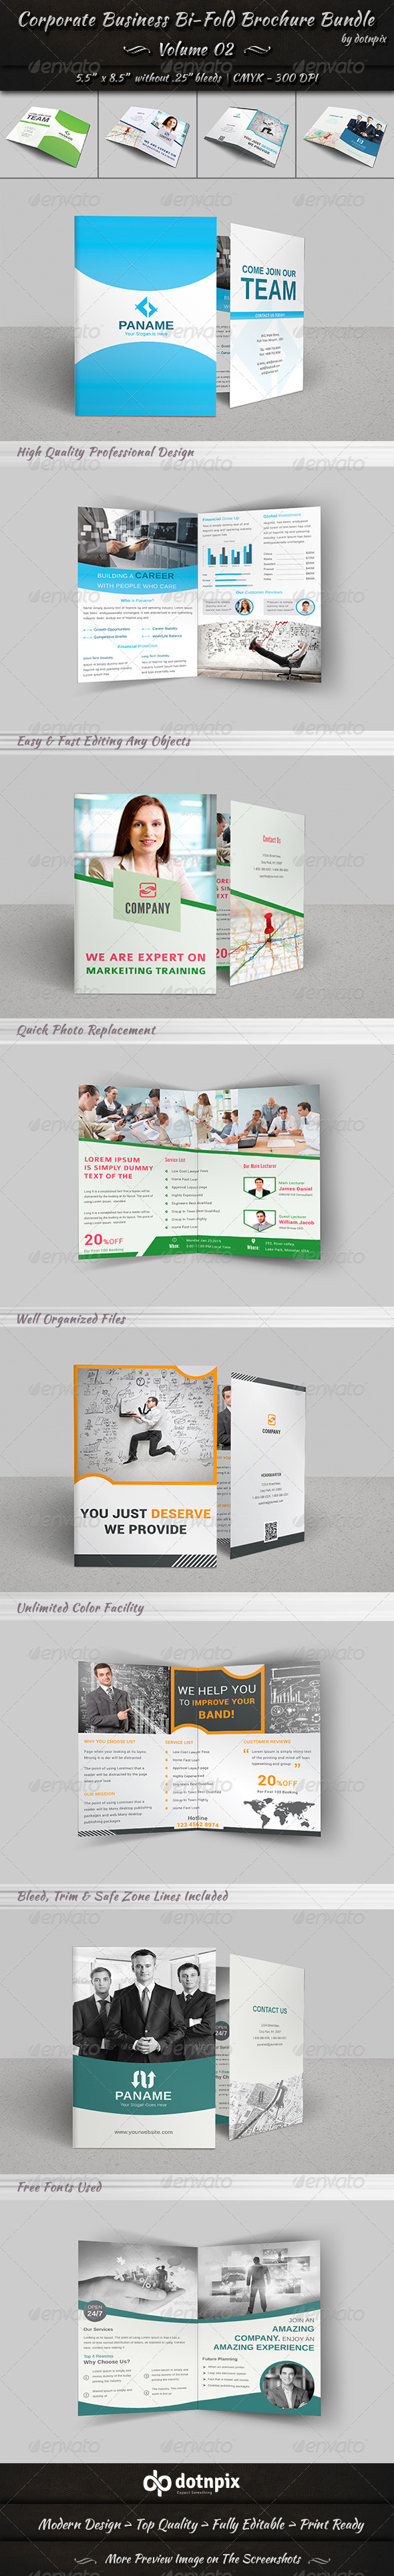 GraphicRiver Corporate Business Bi-Fold Brochure Bundle v2 8238445